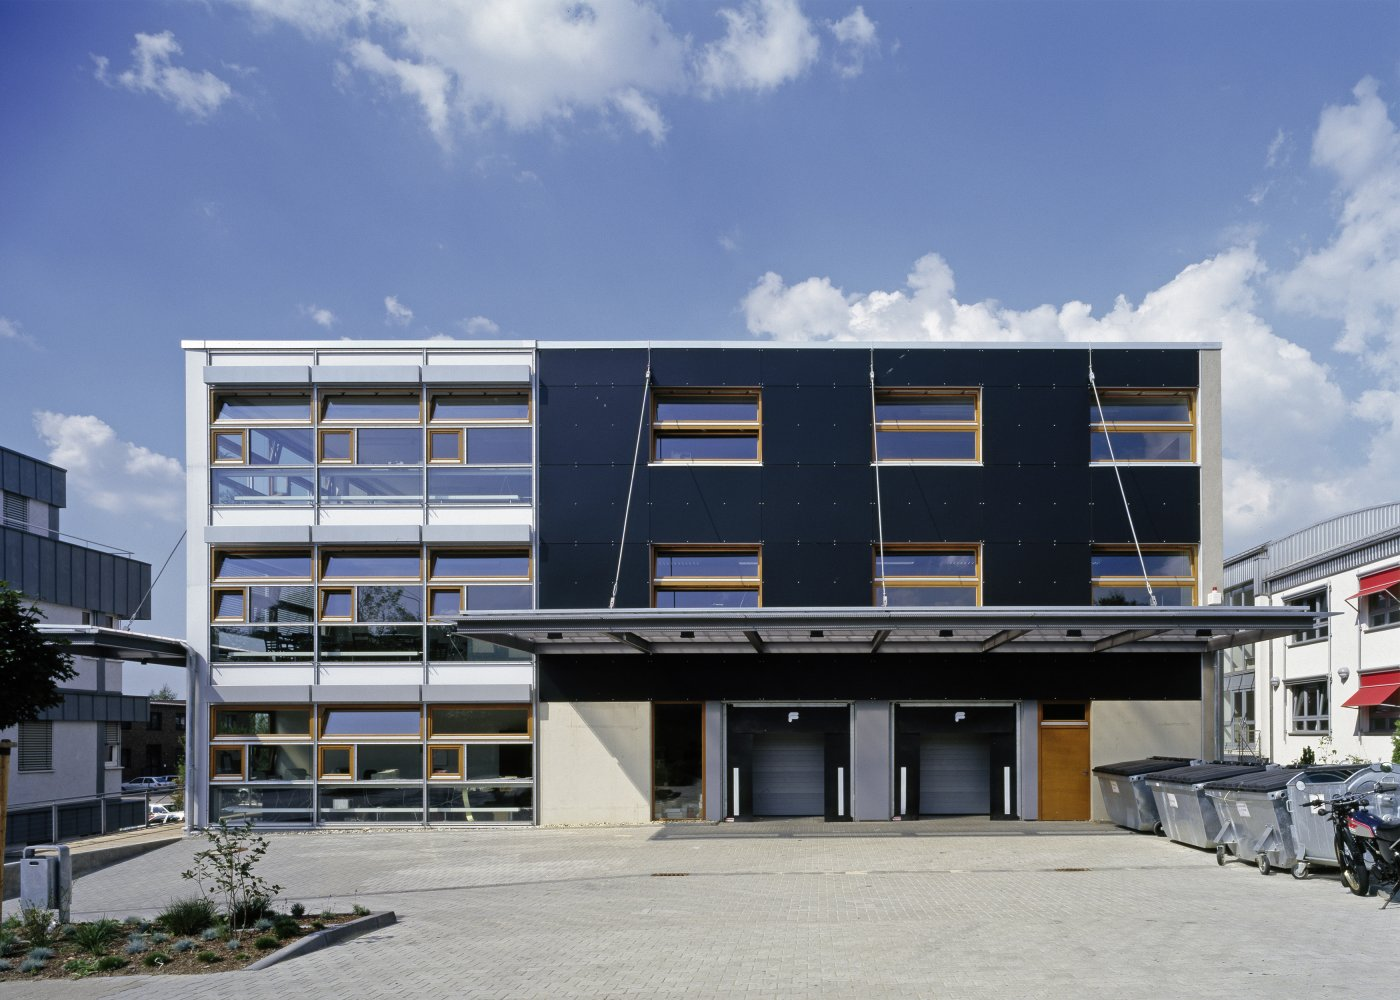 hks | architekten, Logistikzentrum Hancke + Peter, Aachen